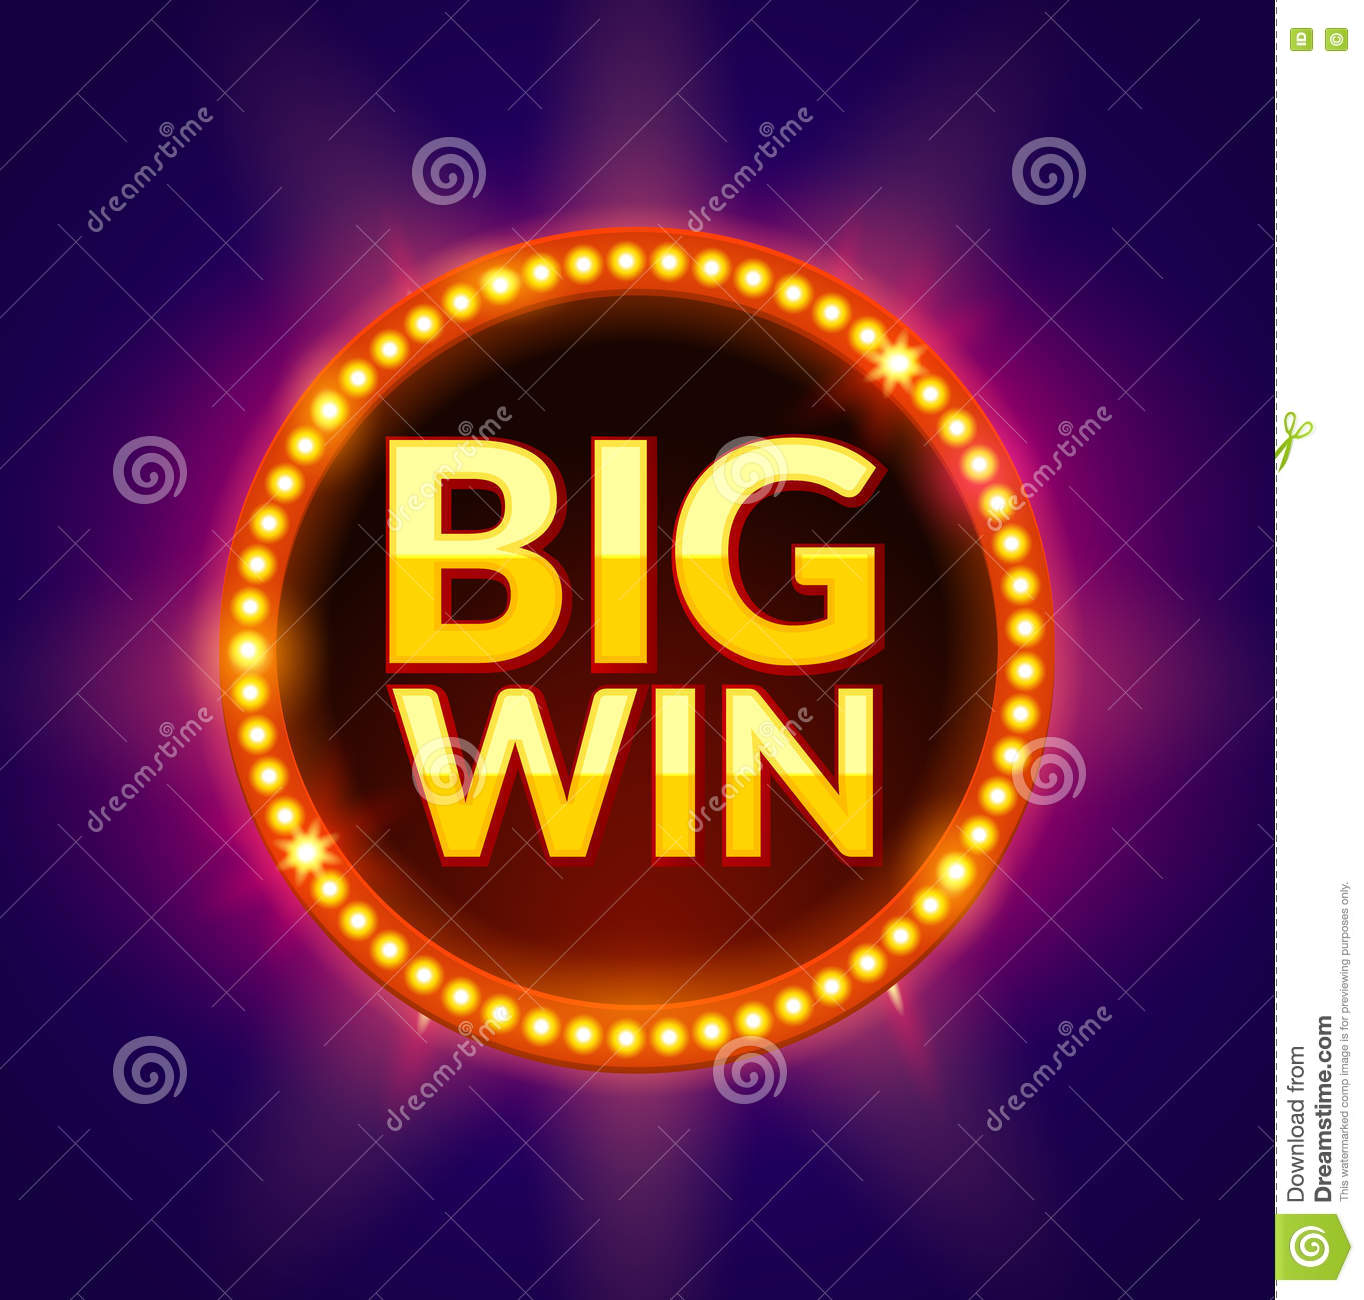 big win glowing banner for online casino  slot  card games